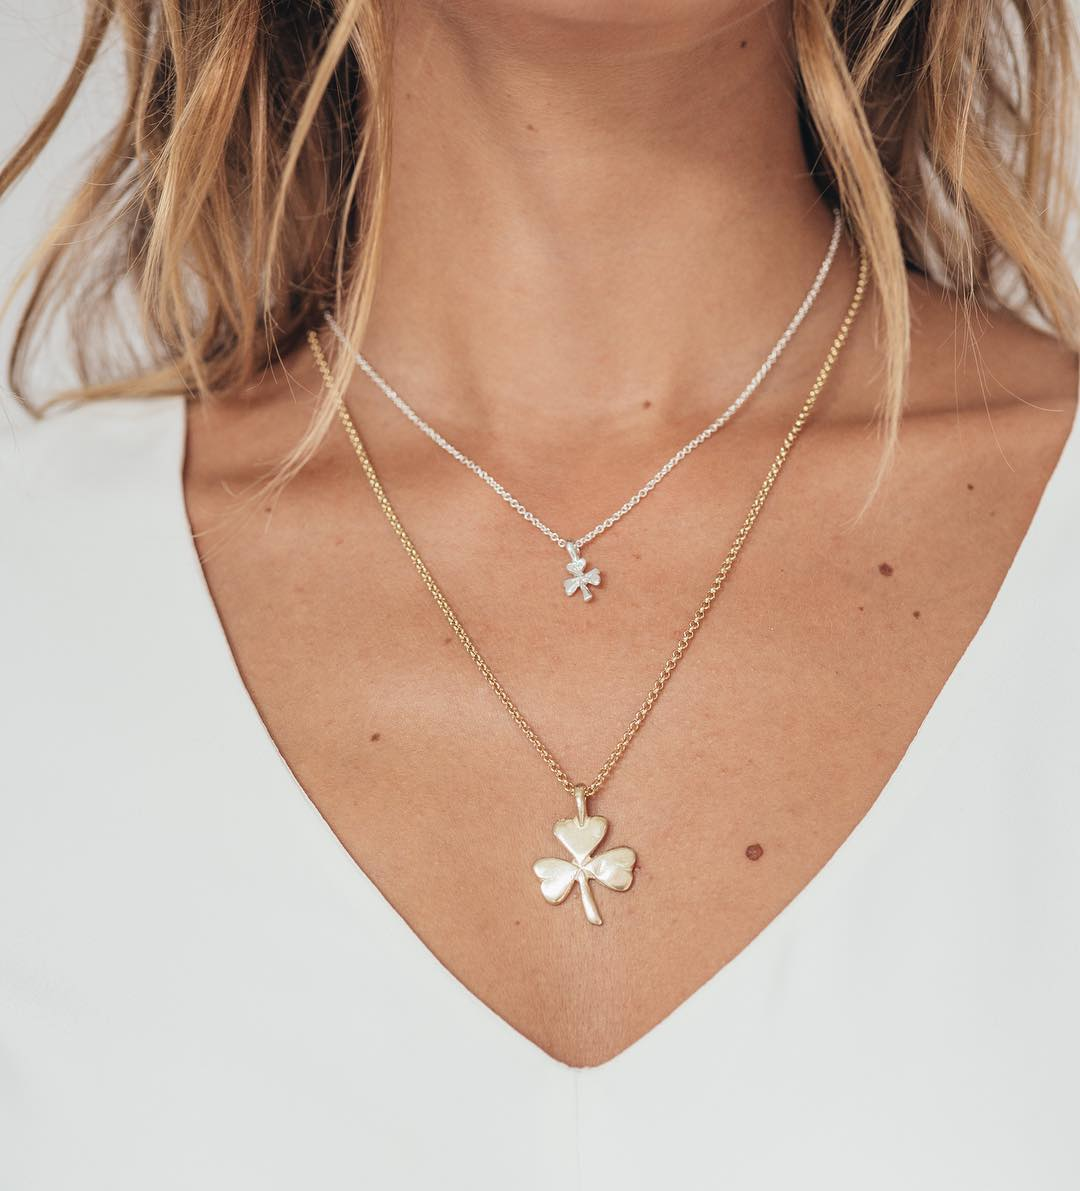 shamrock-necklace